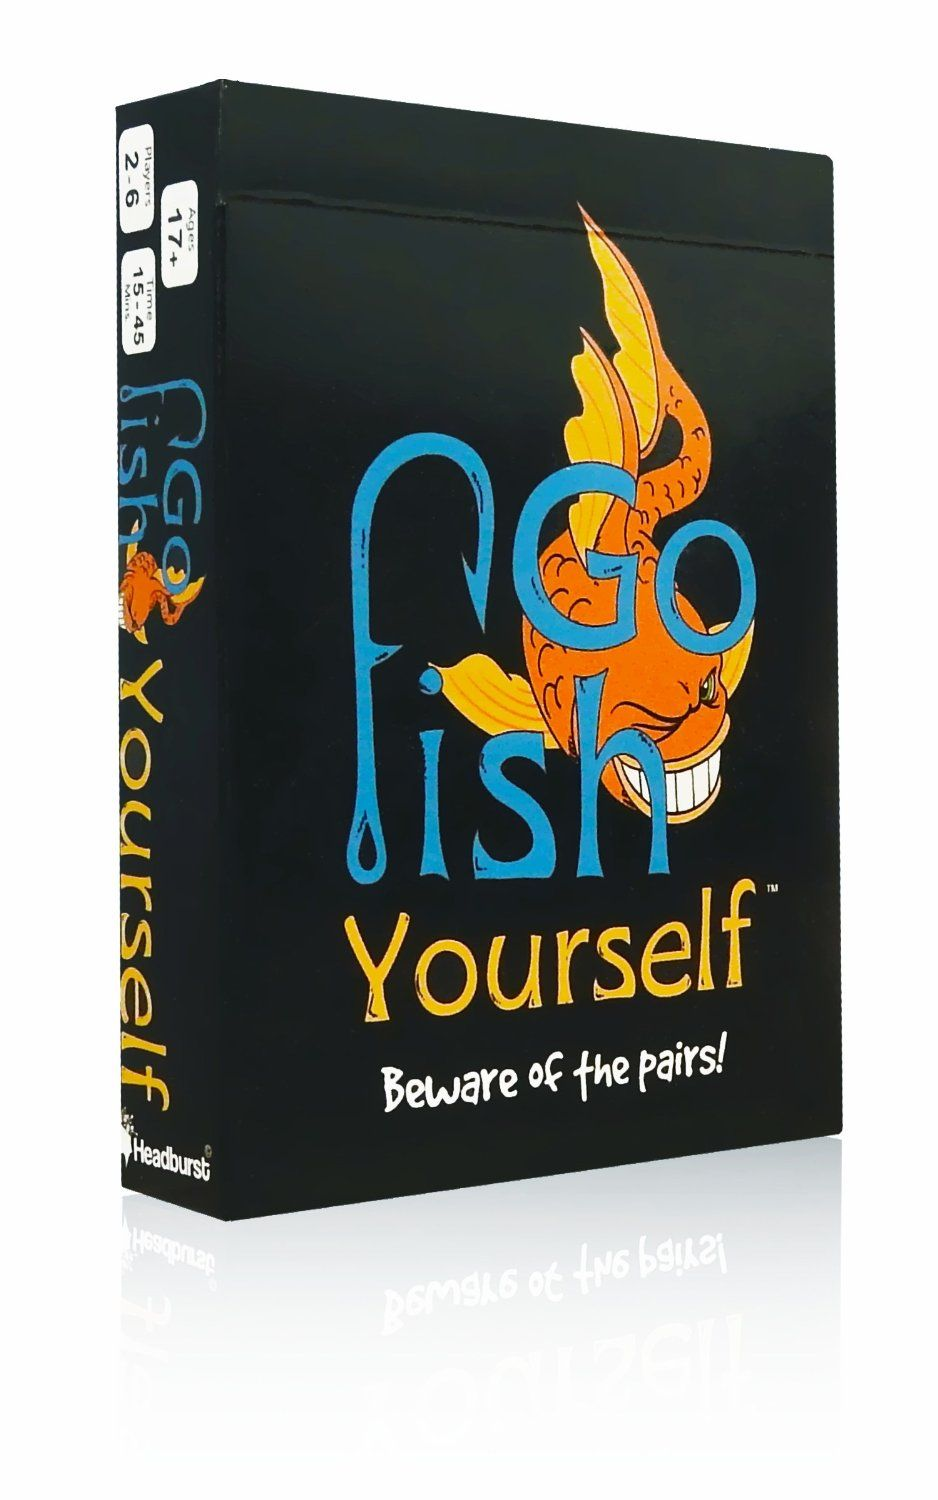 Go fish yourself party game adult party games party